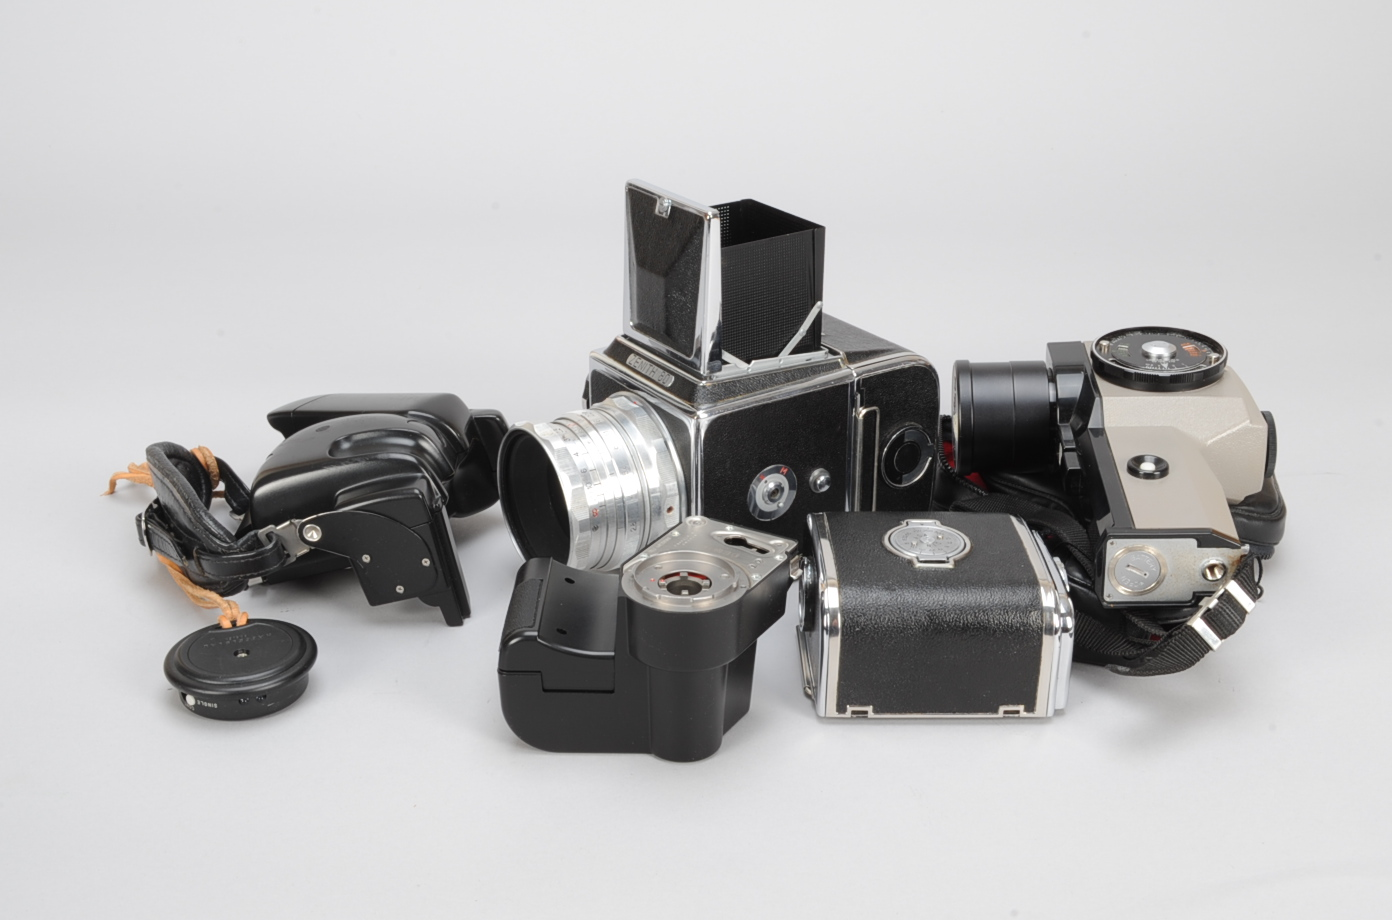 Lot 11 - A Zenith 80 Roll Film SLR Camera, shutter not firing, with an Industar-29 80mm f/2.8 lens, waist-